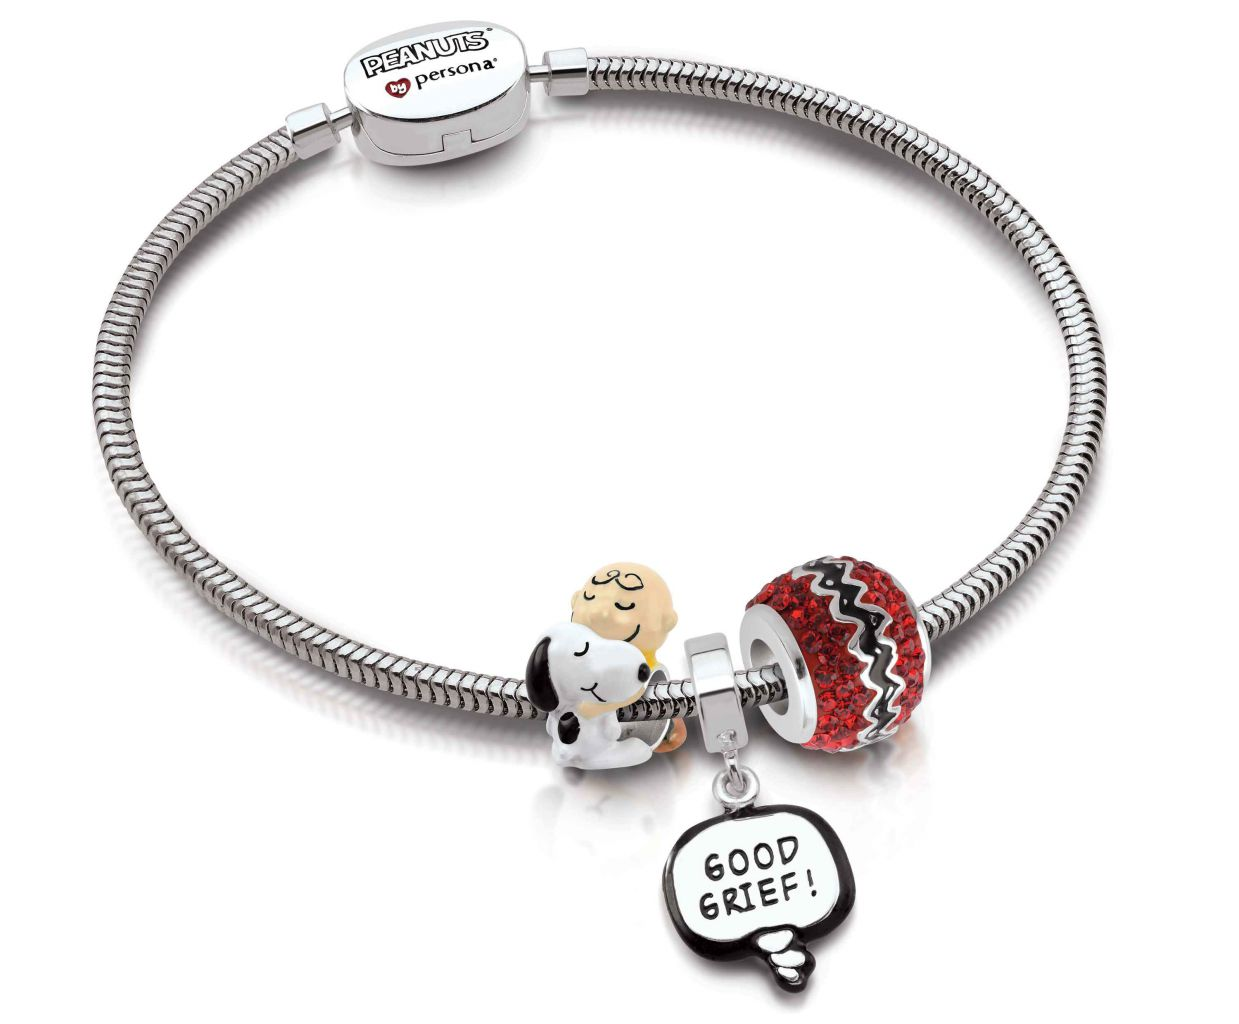 Peanuts by Persona collection bracelet